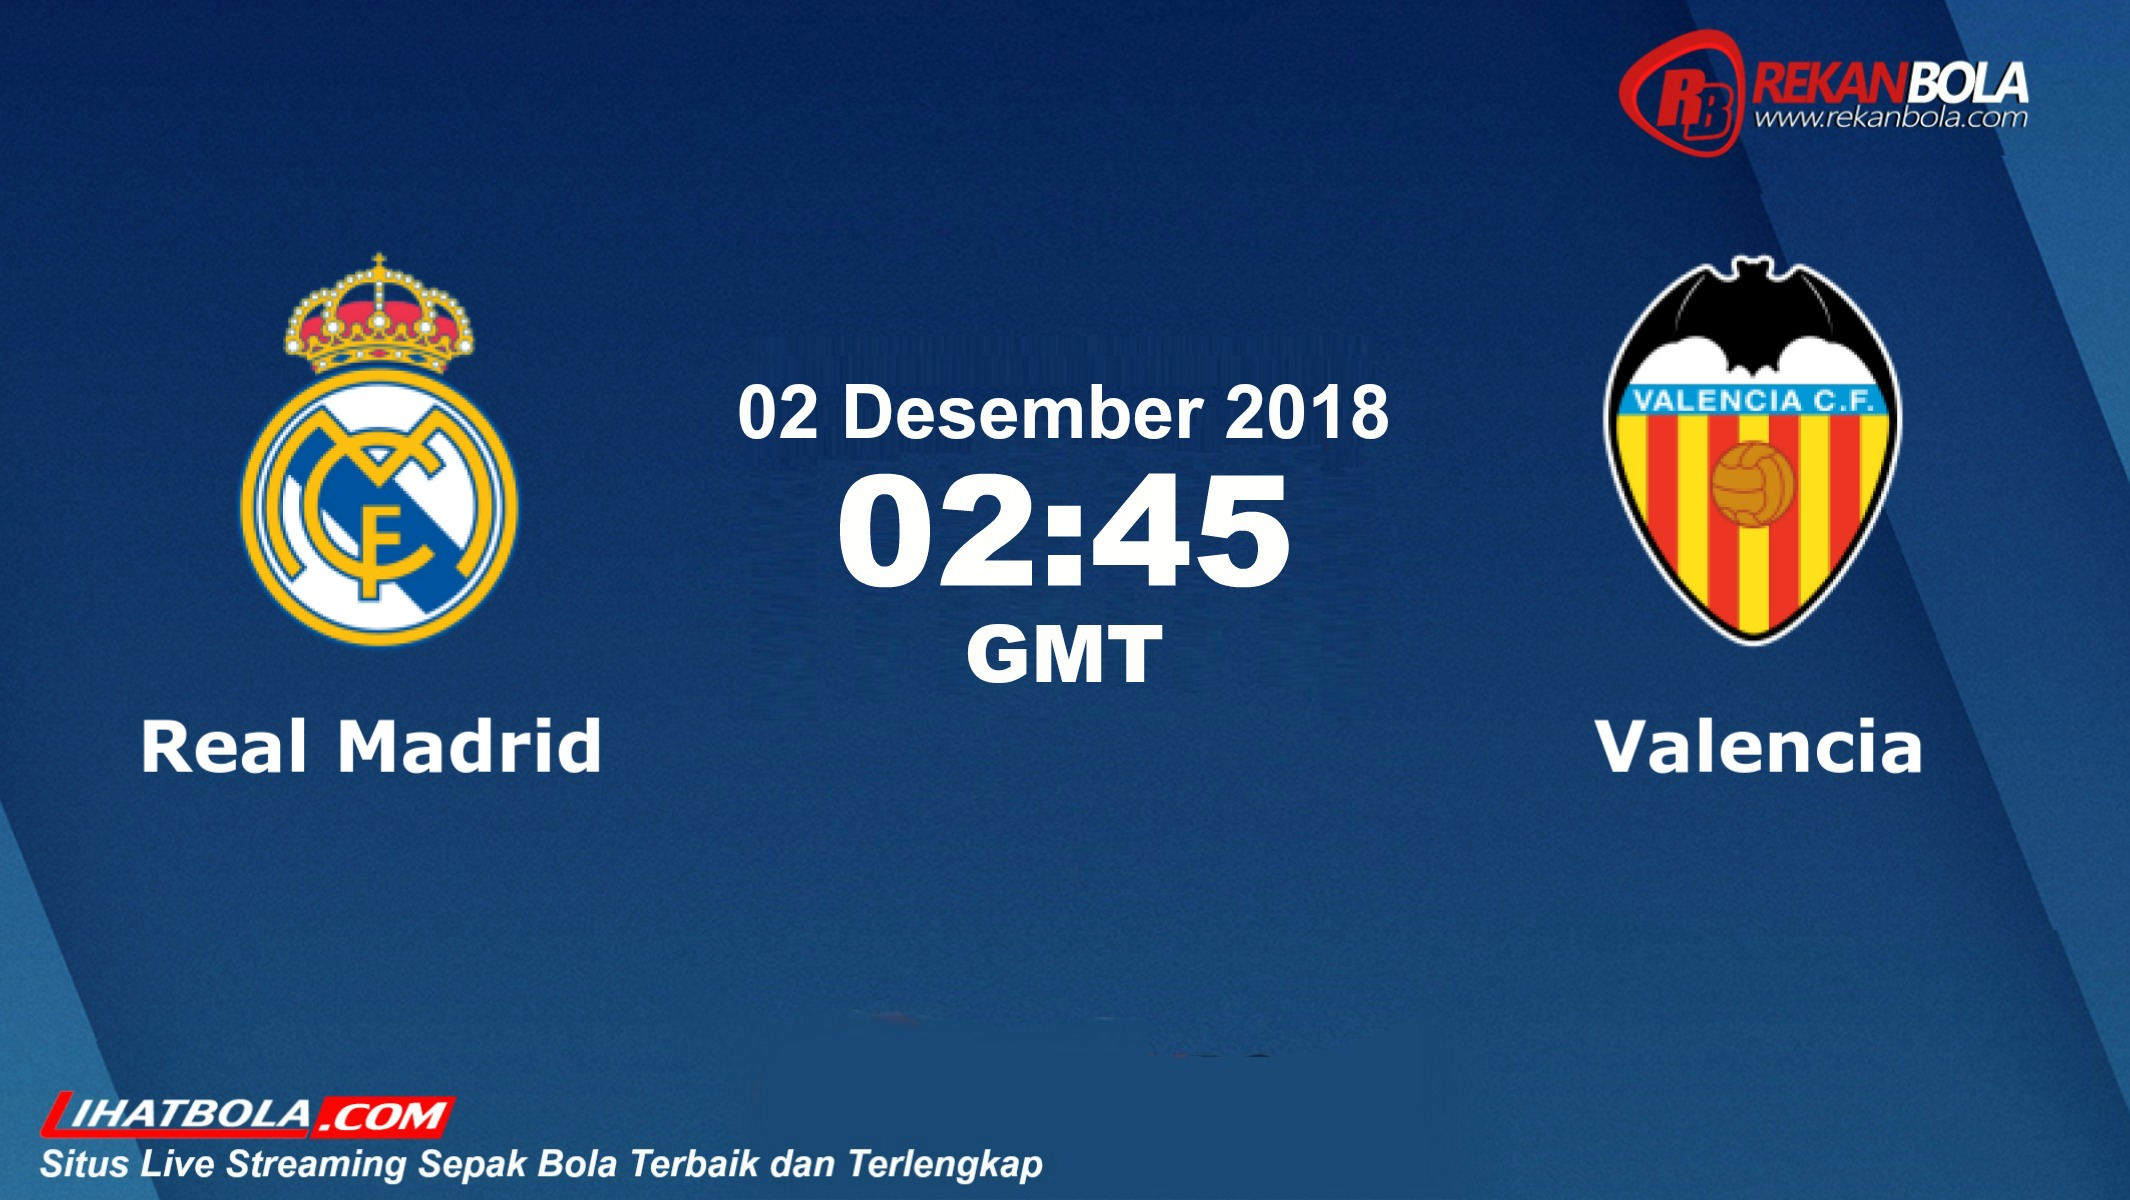 Nonton Siaran Live Streaming Madrid Vs Valencia 02 Desember 2018